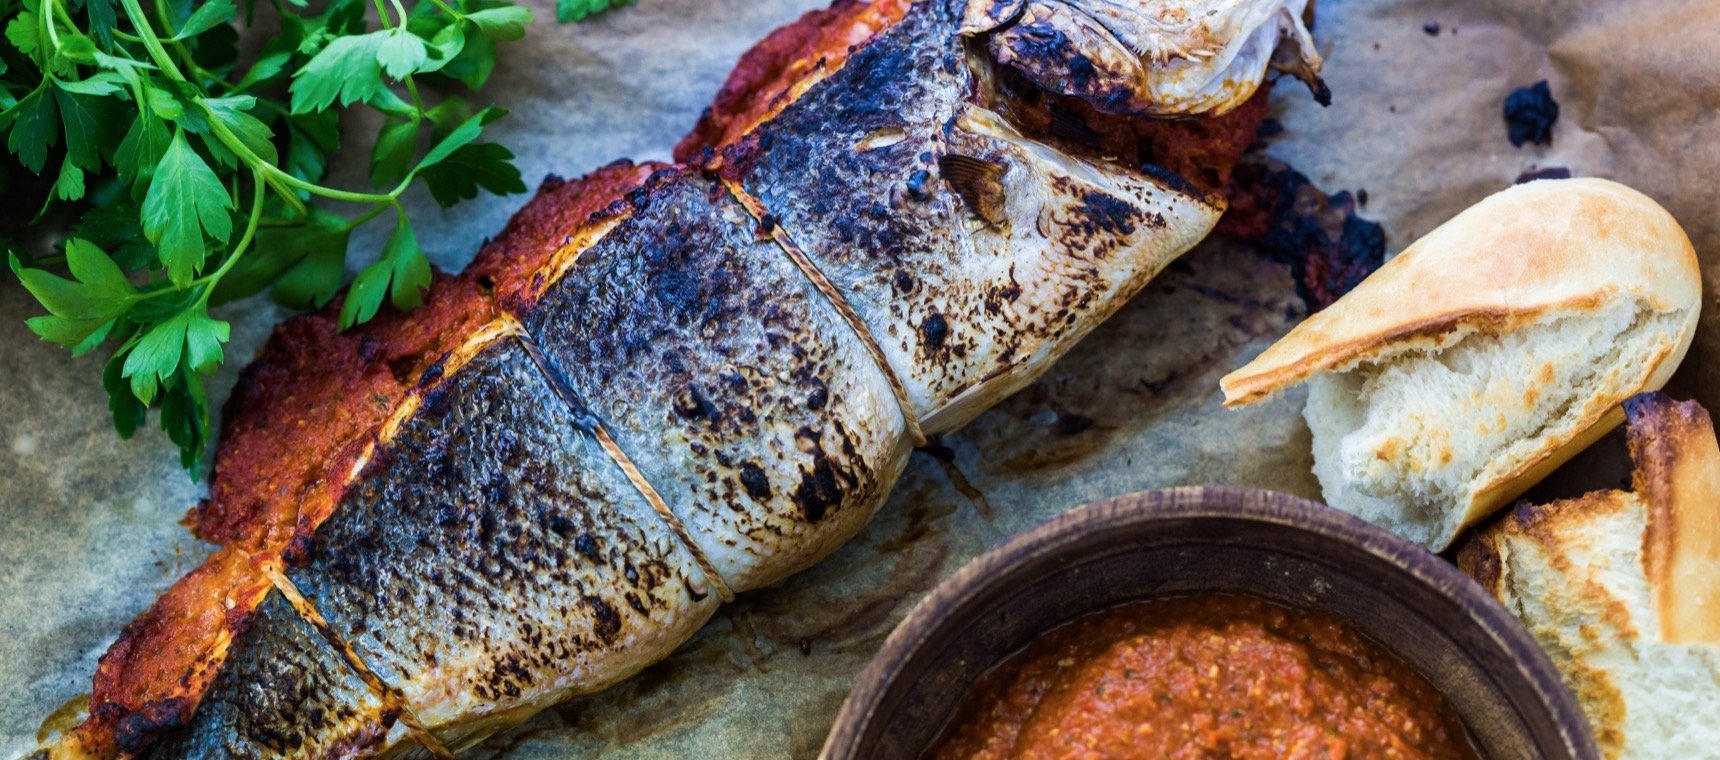 Grilled Seabass stuffed with Red Pepper Paste